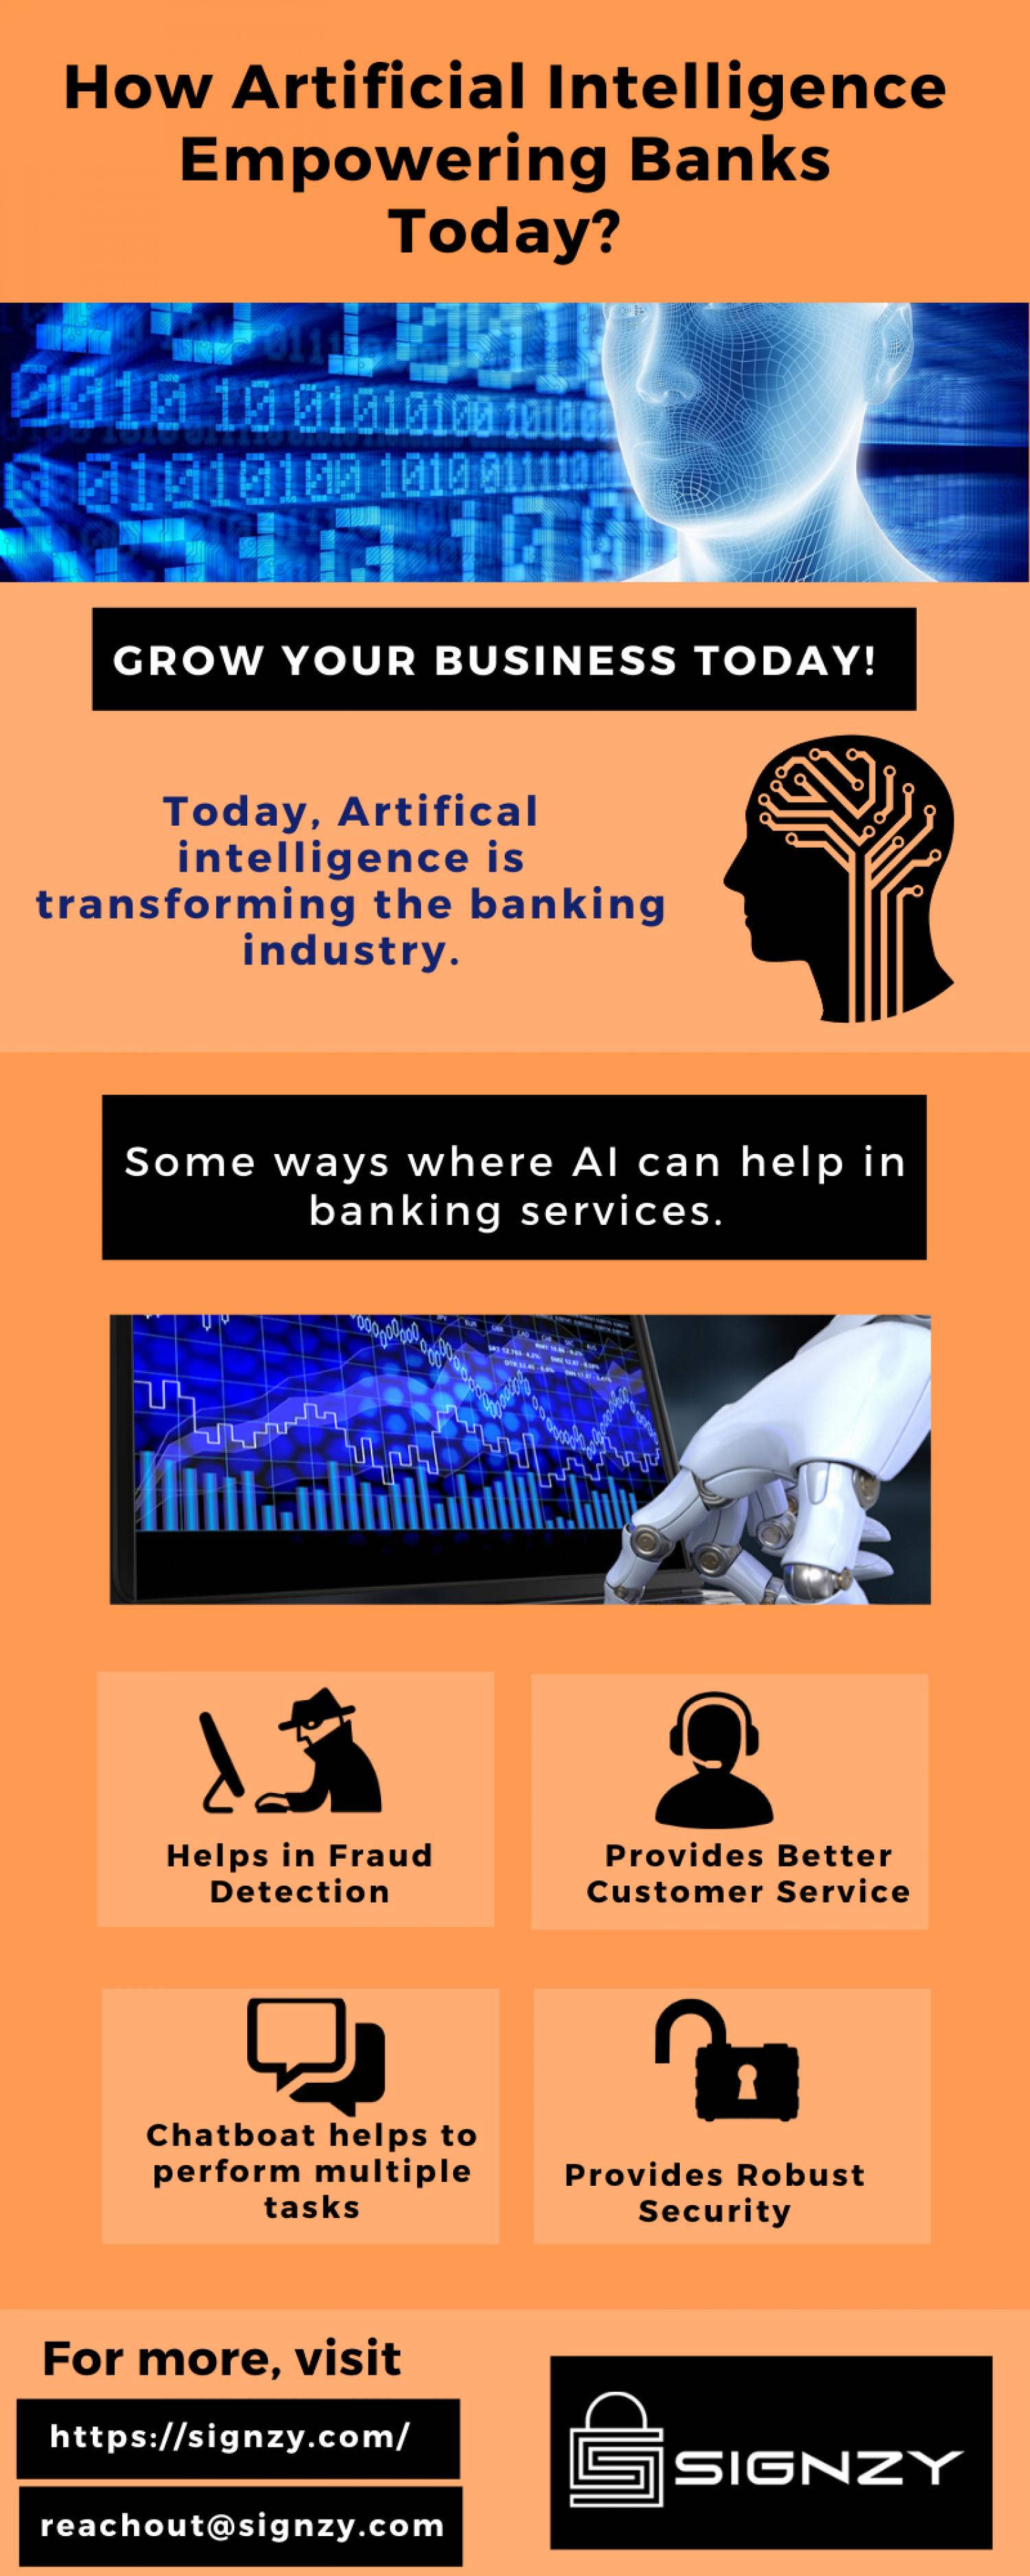 How Artificial Intelligence is Empowering Banks Today? Infographic